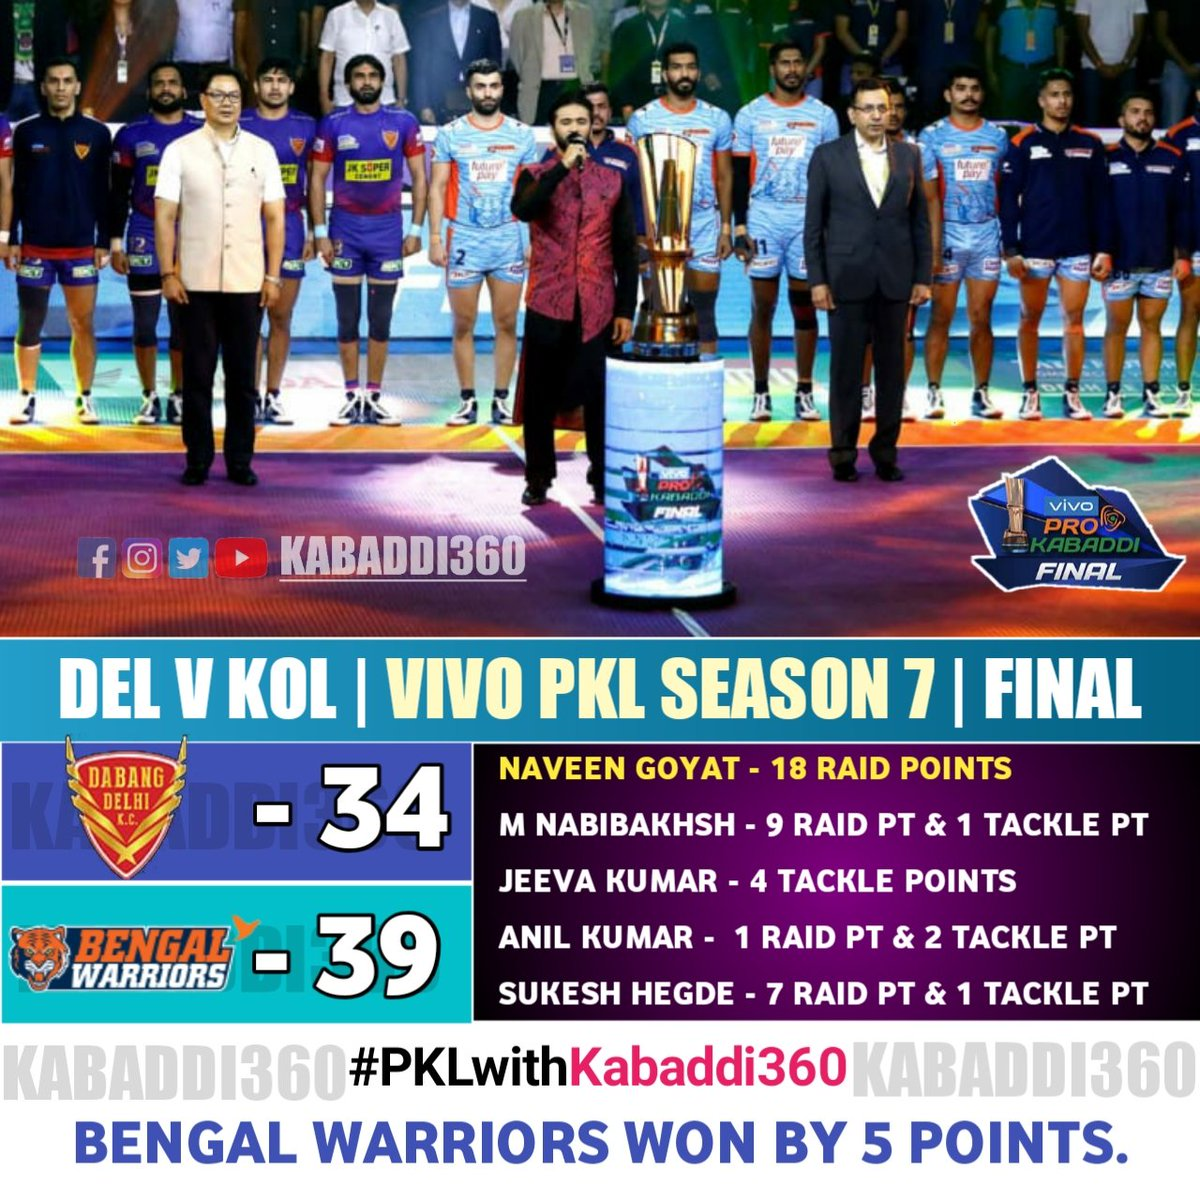 BENGAL WARRIORS 🔥 are your CHAMPIONS of Season 7 as they demolish the pre-favorites DABANG DELHI K.C.!   #DELvKOL #VIVOProKabaddiFinal #IsseToughKuchNahi #PKLWithKabaddi360 #vivoProKabaddi